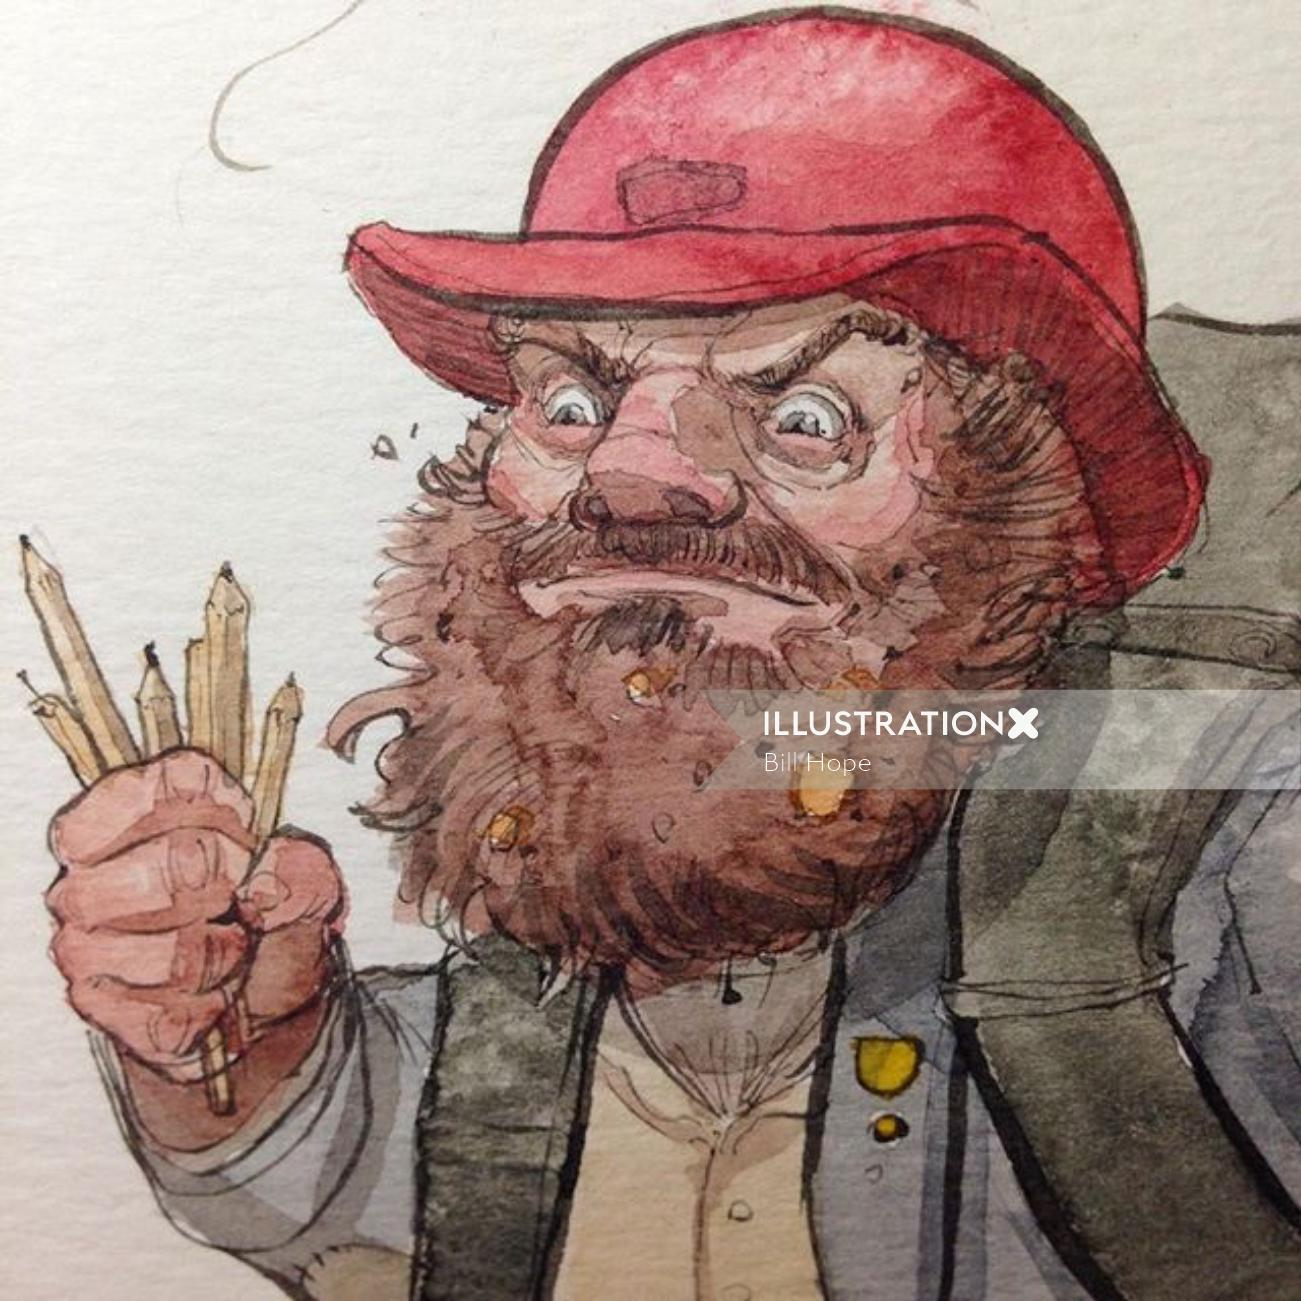 Illustration of angery elderly man